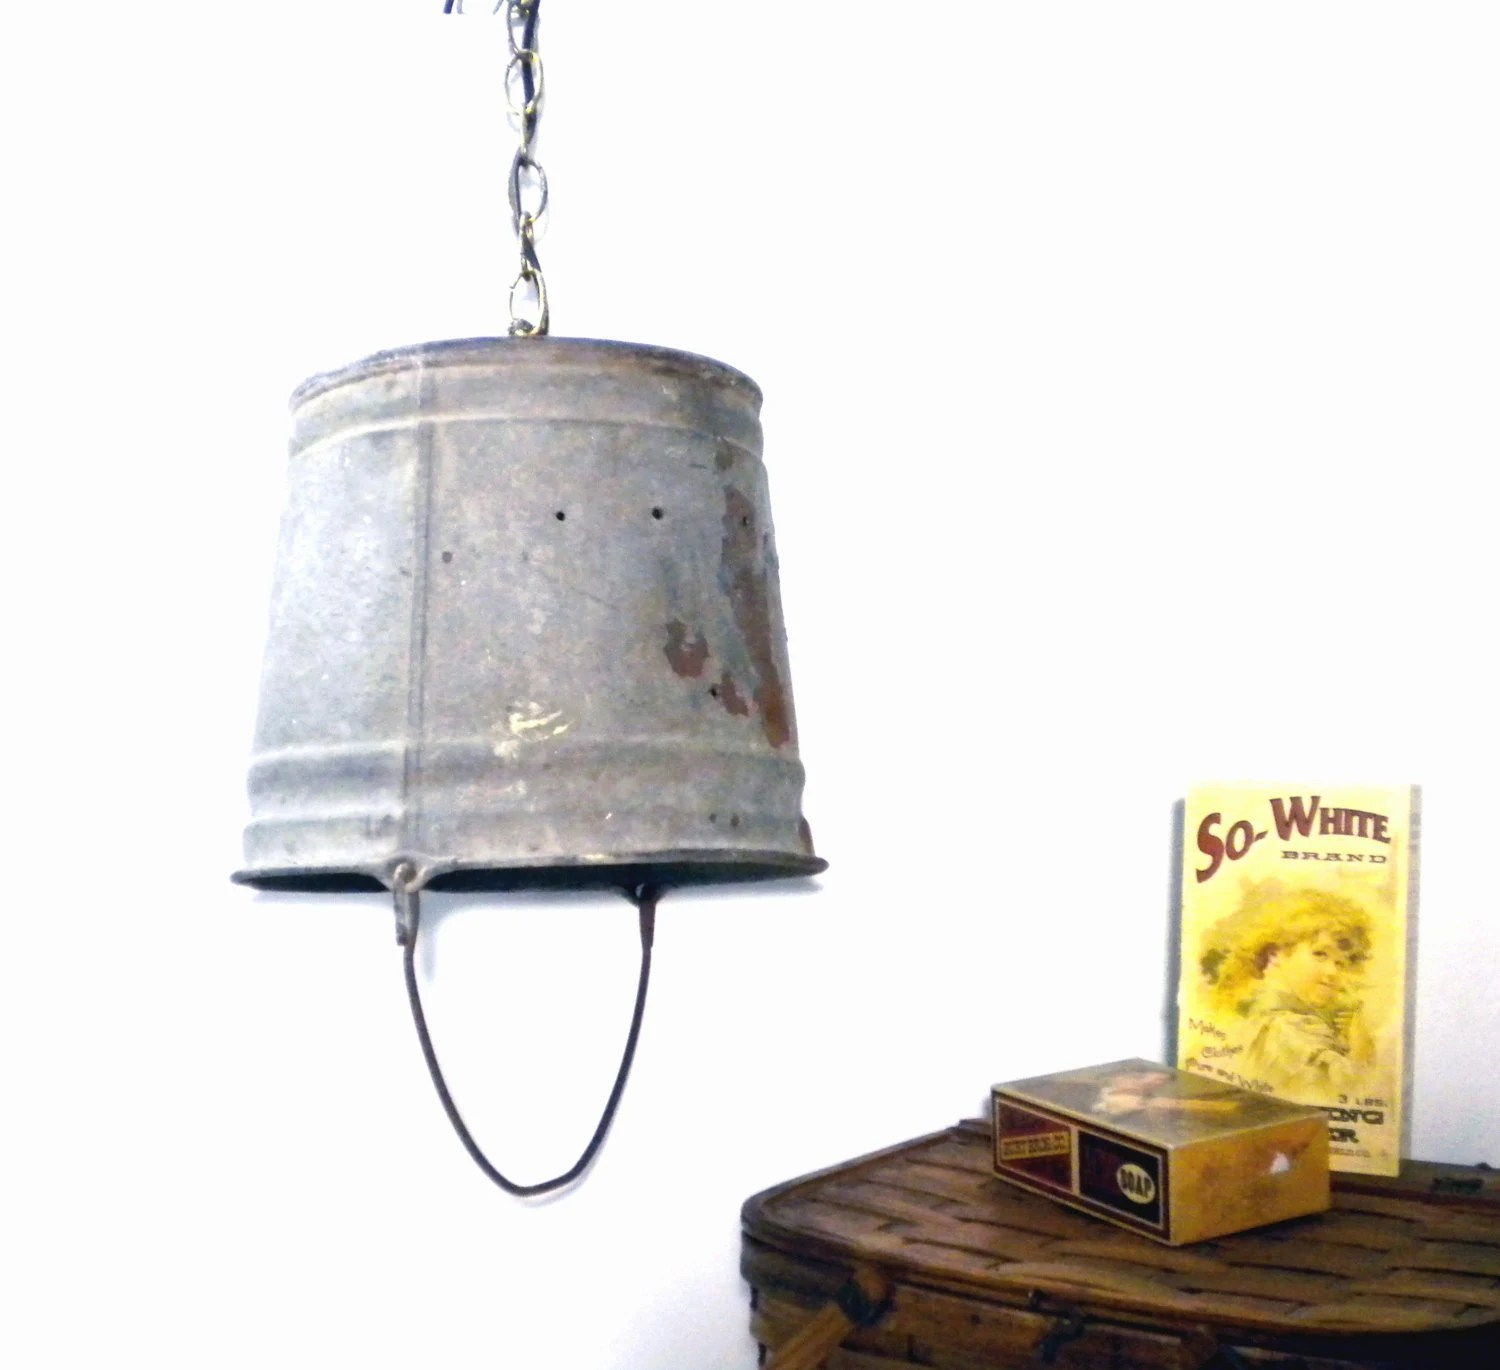 Wiring A Kitchen Light Fixture Vintage Swag Lamp Rustic Galvanized Metal Bucket Shade Light